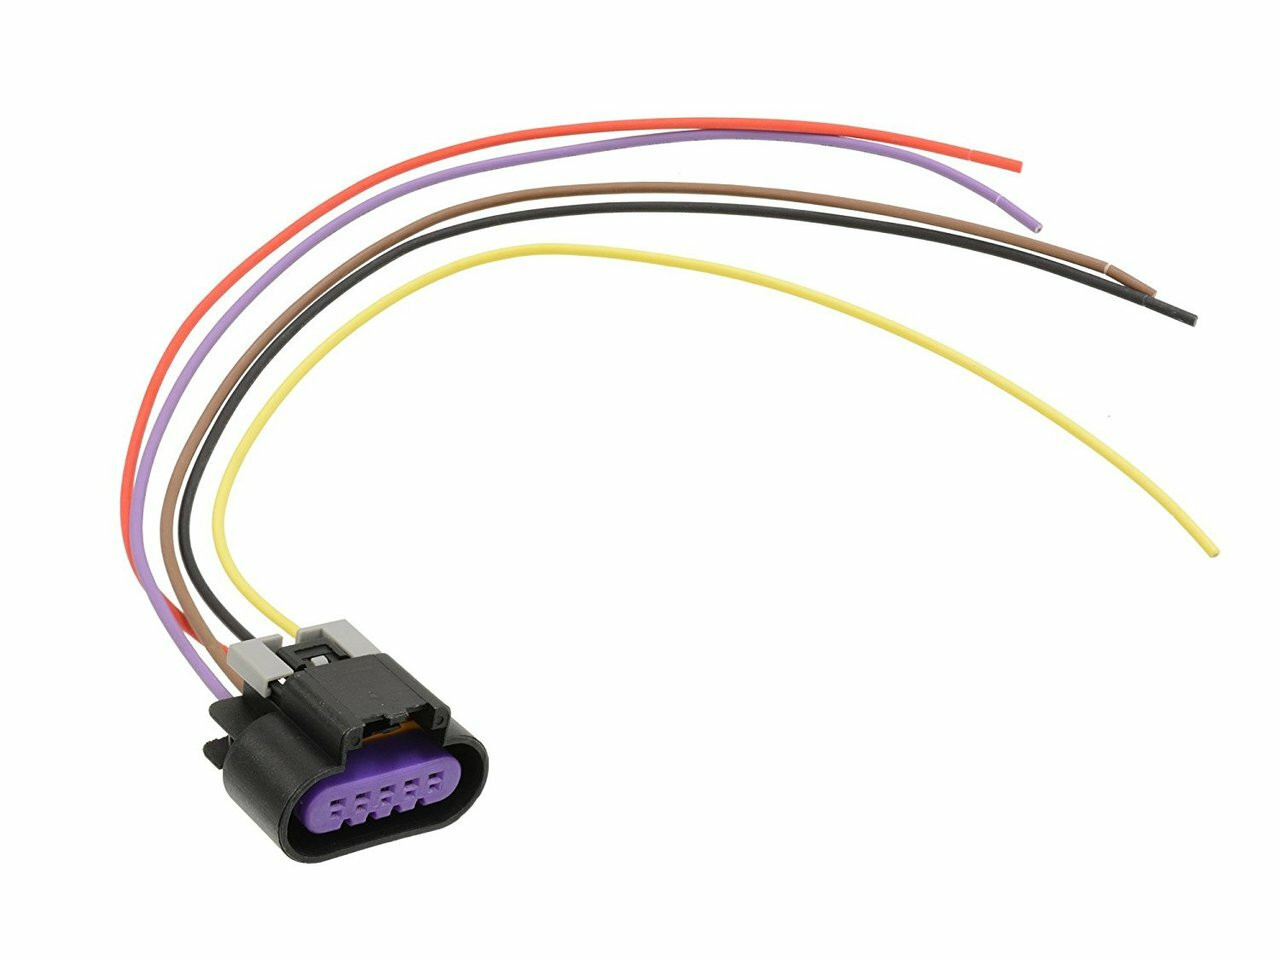 5 wire maf mass air flow sensor wire harness gm gmc cadillac hummer chevy buick saab [ 1280 x 960 Pixel ]